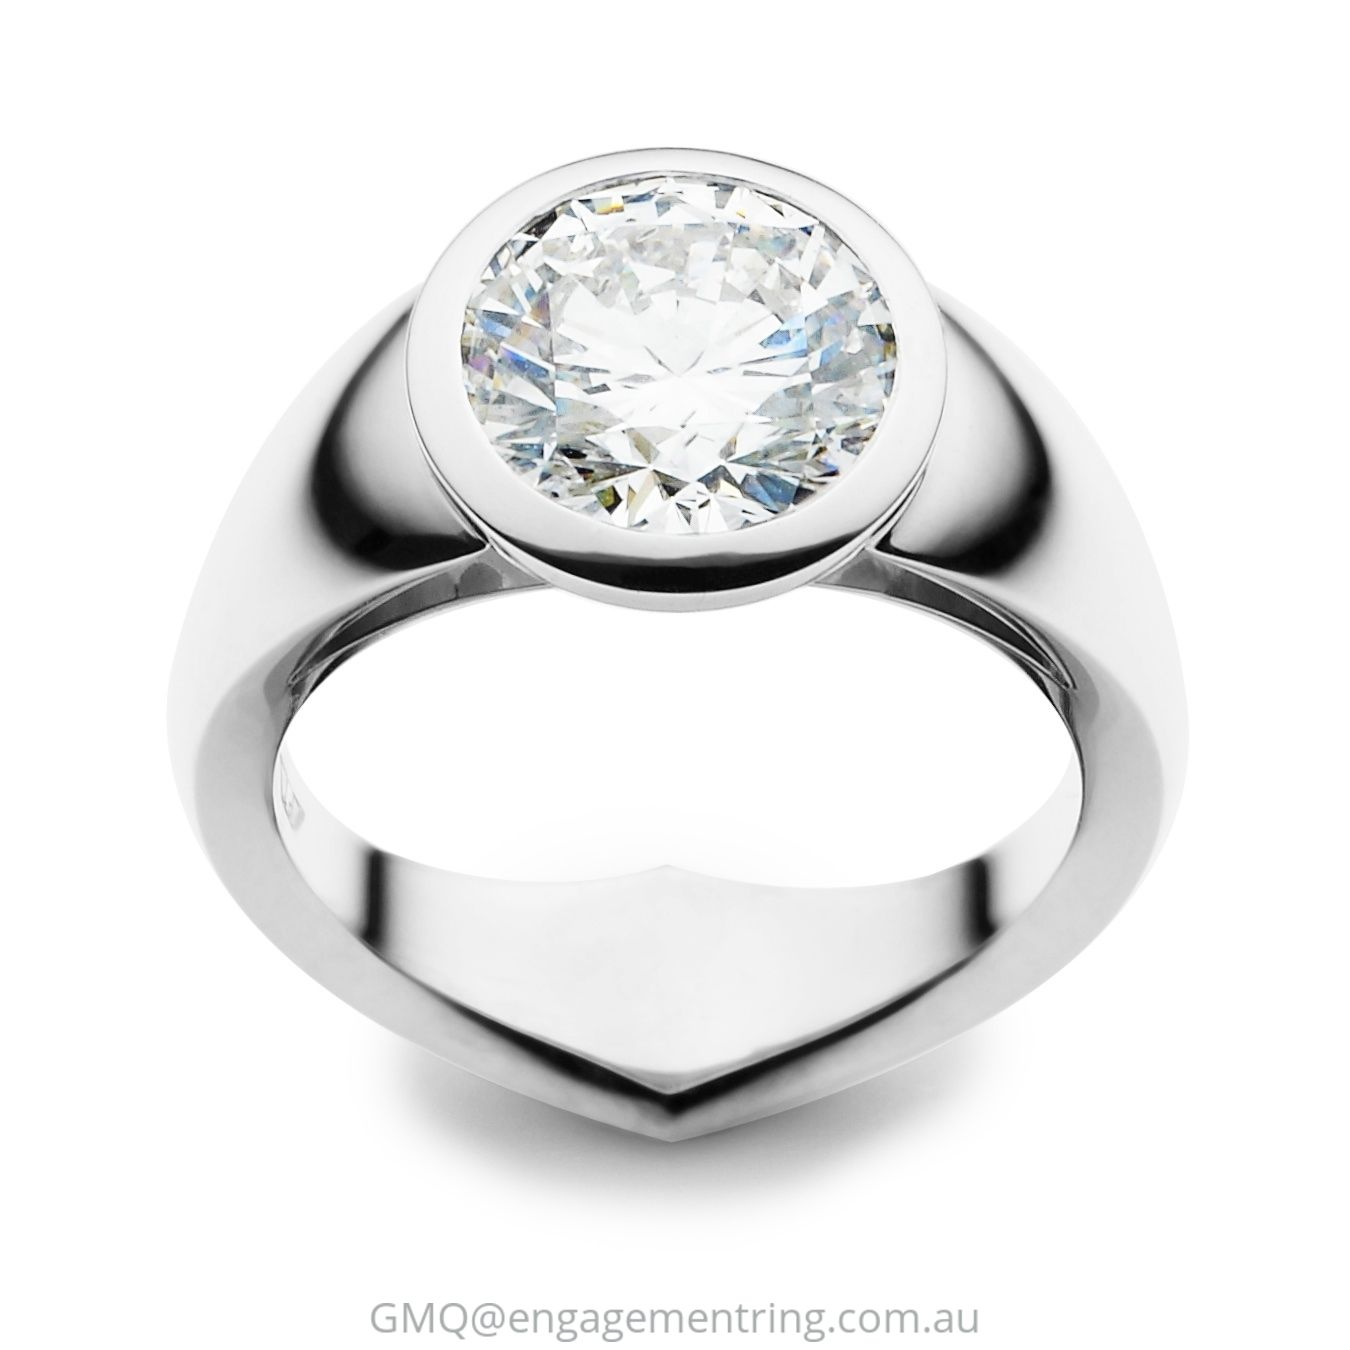 rings e zadok diamond ring jewellery contemporary whitney shop angle engagement artcarved wedding